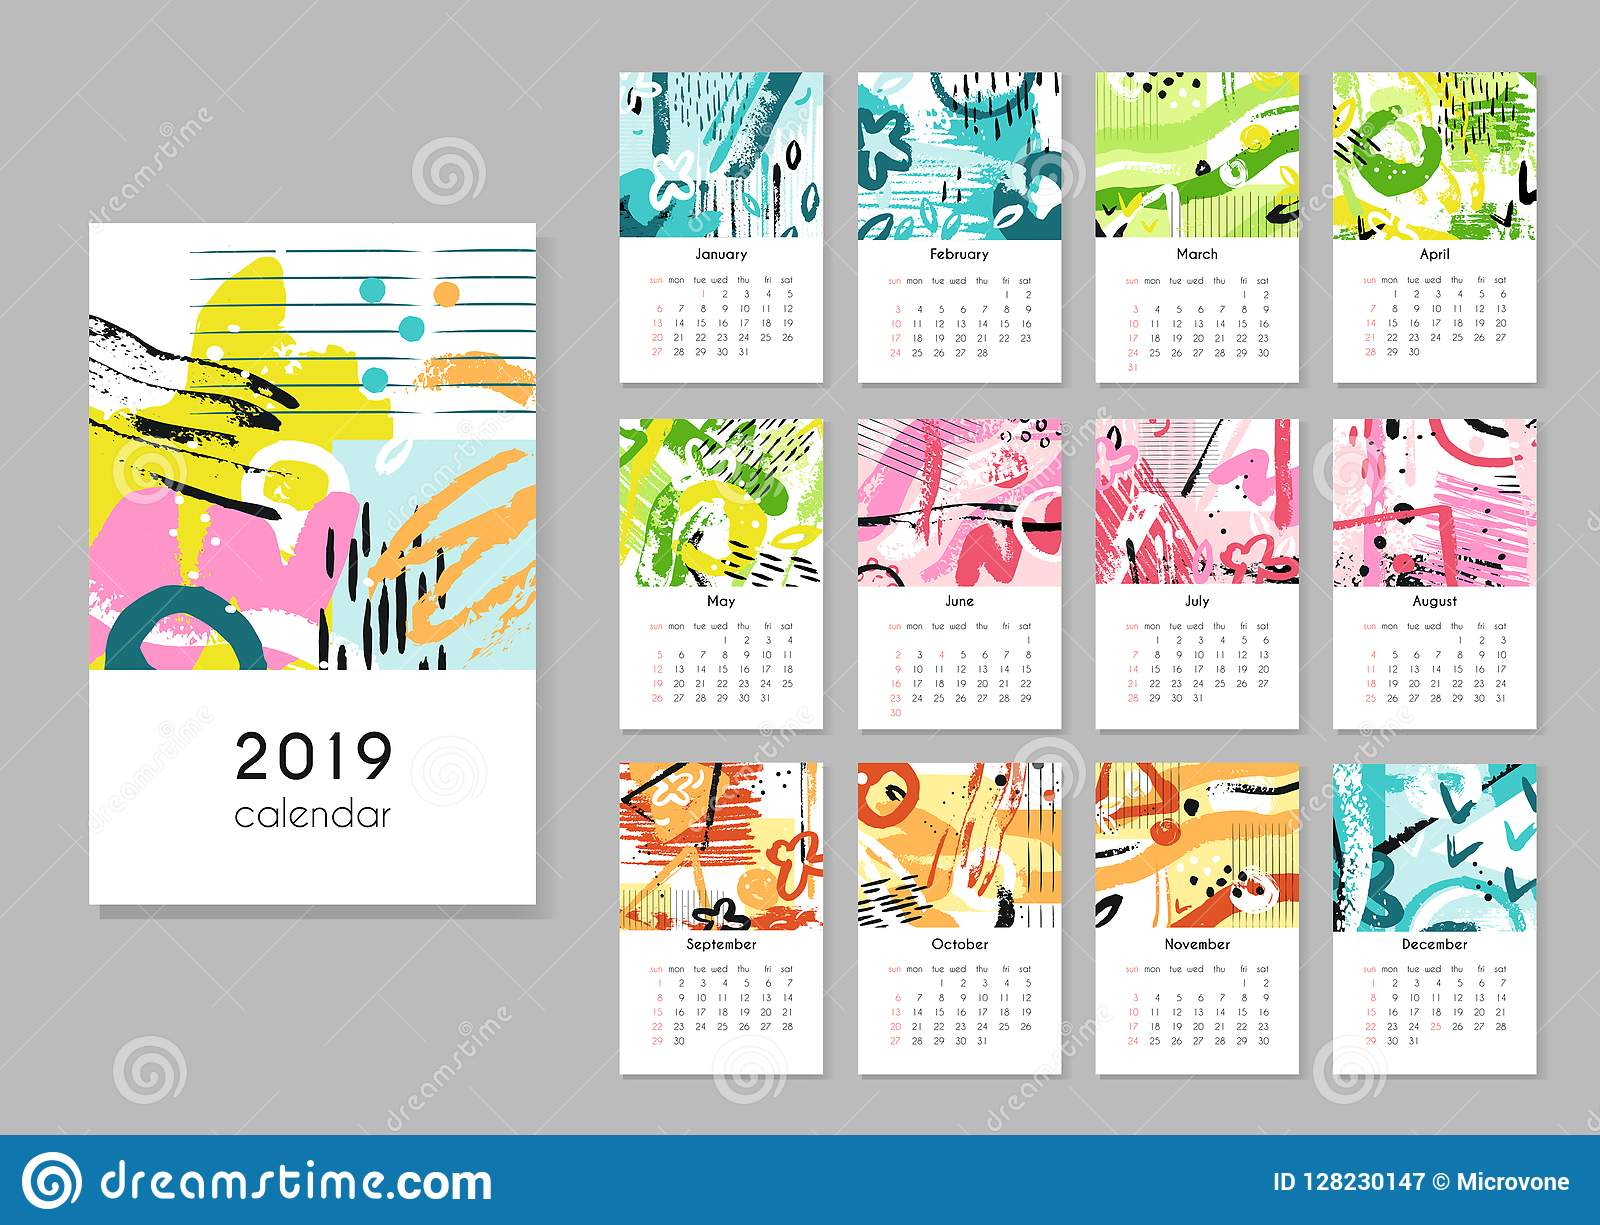 Calendar 2019 Seasons Collage Abstract Painting Modern Creative